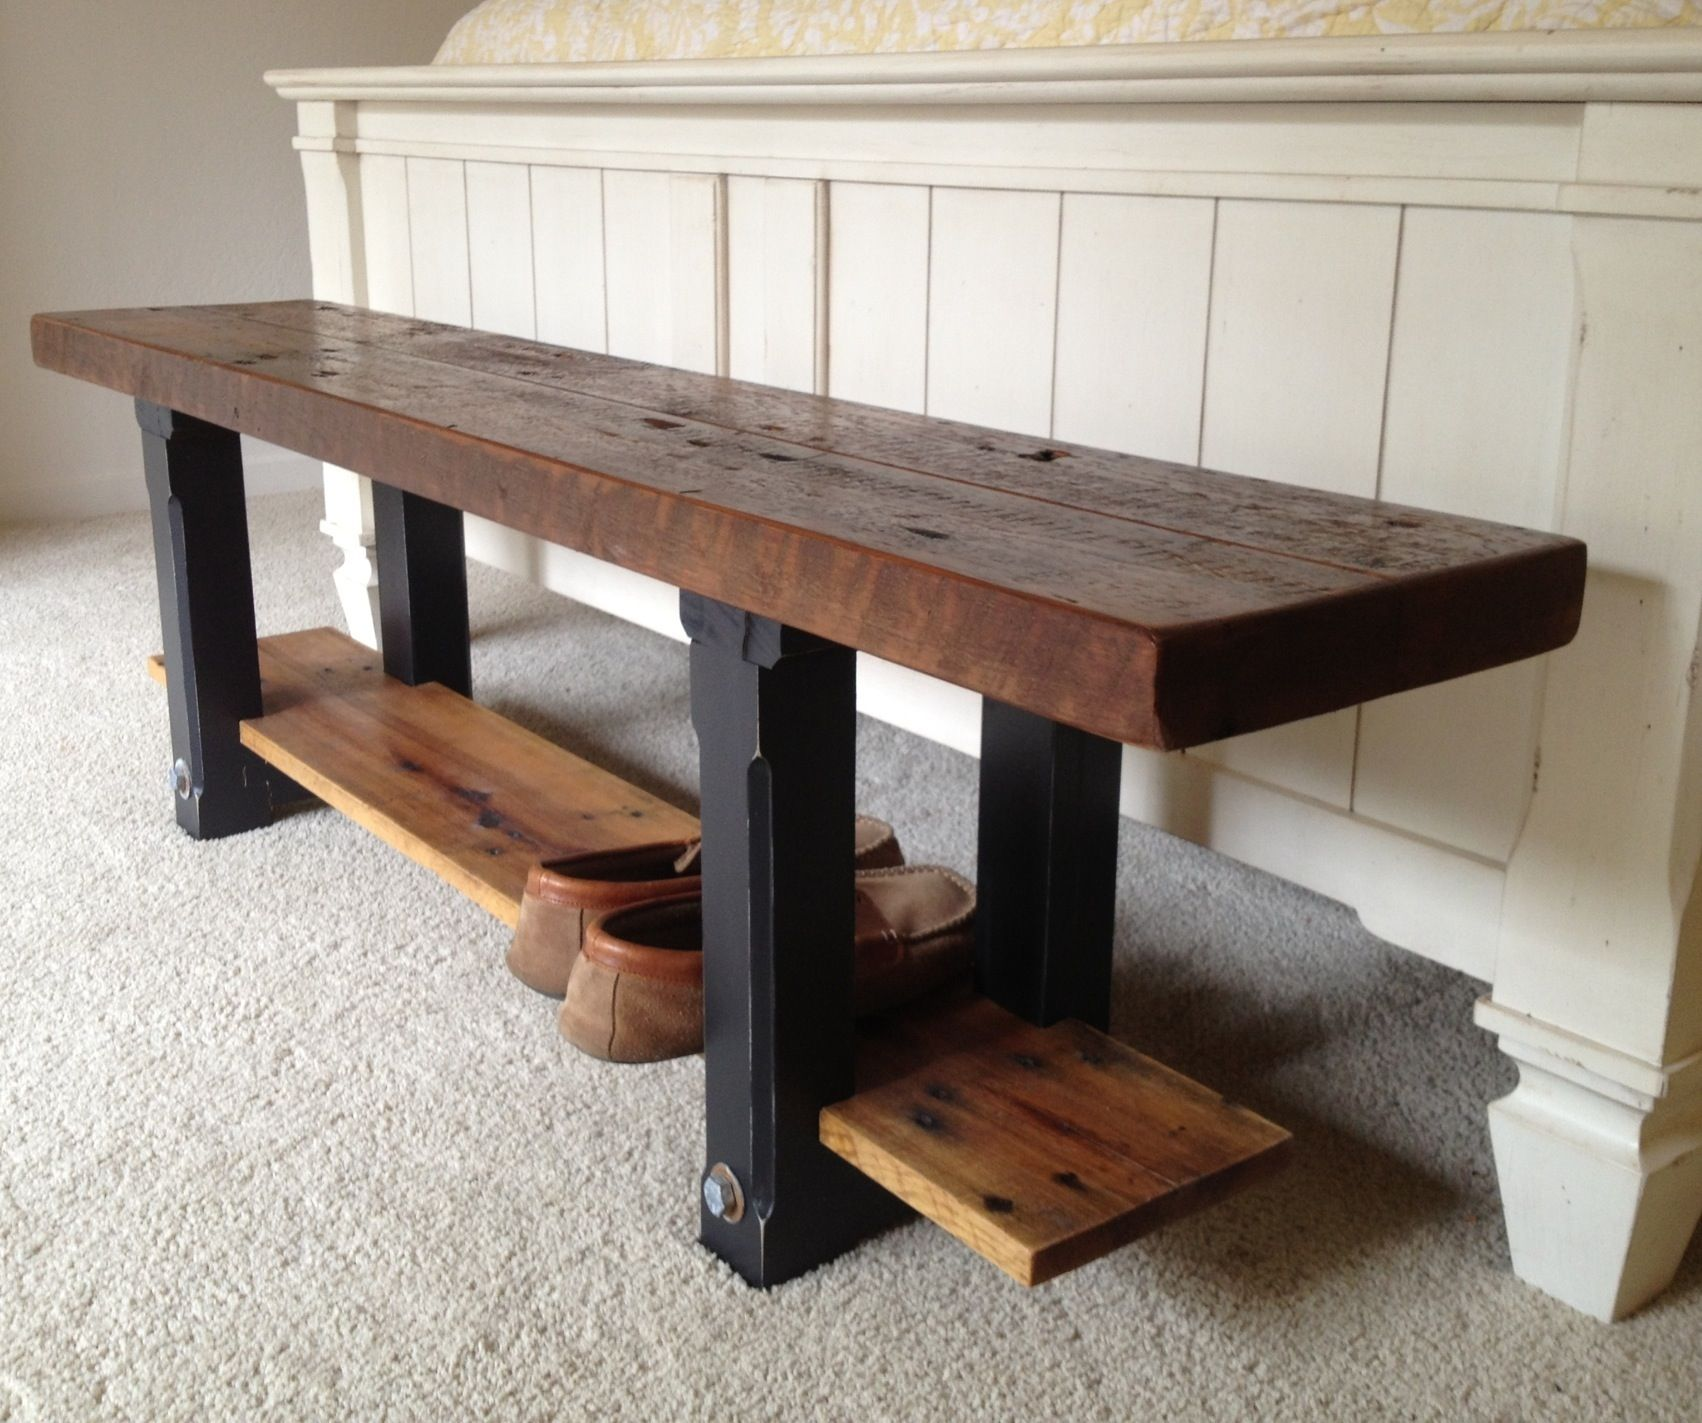 2 Layers Of Reclaimed Wood   Minus The Ugly Legs